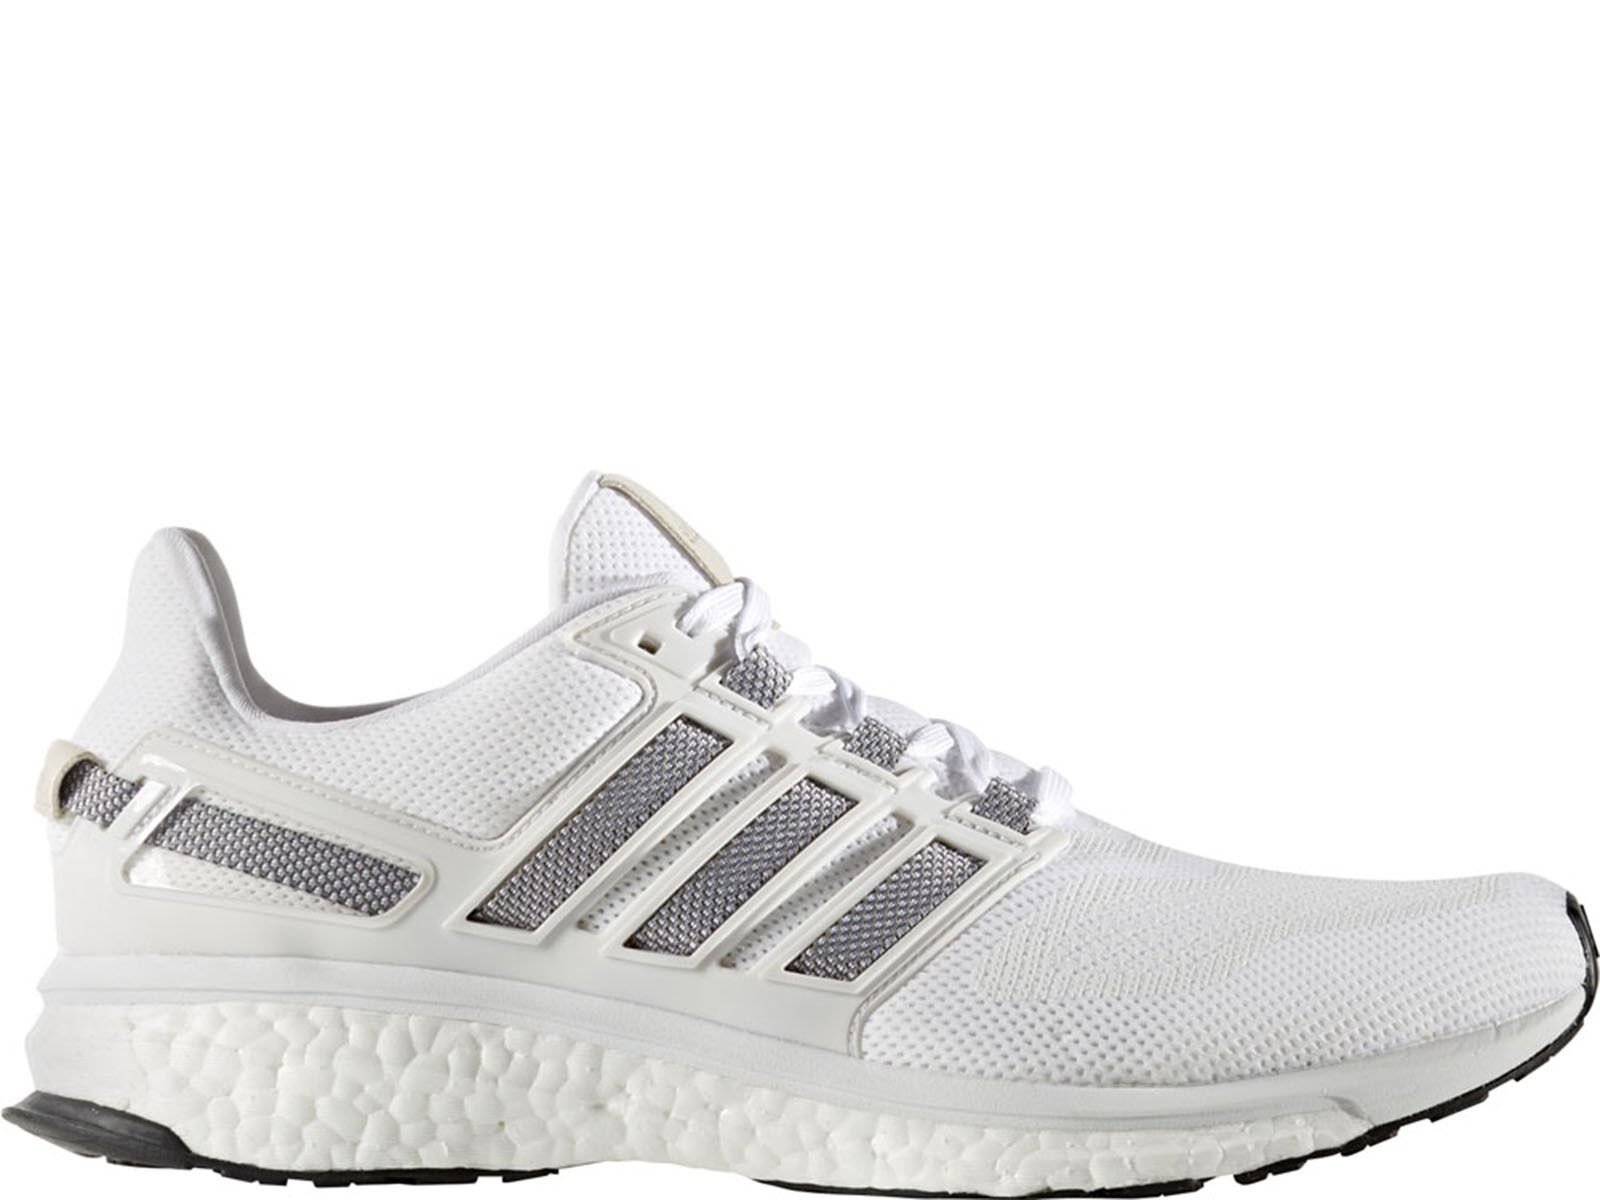 Brand New adidas Energy Boost 3 Men's Athletic Fashion Sneakers [AQ5960]